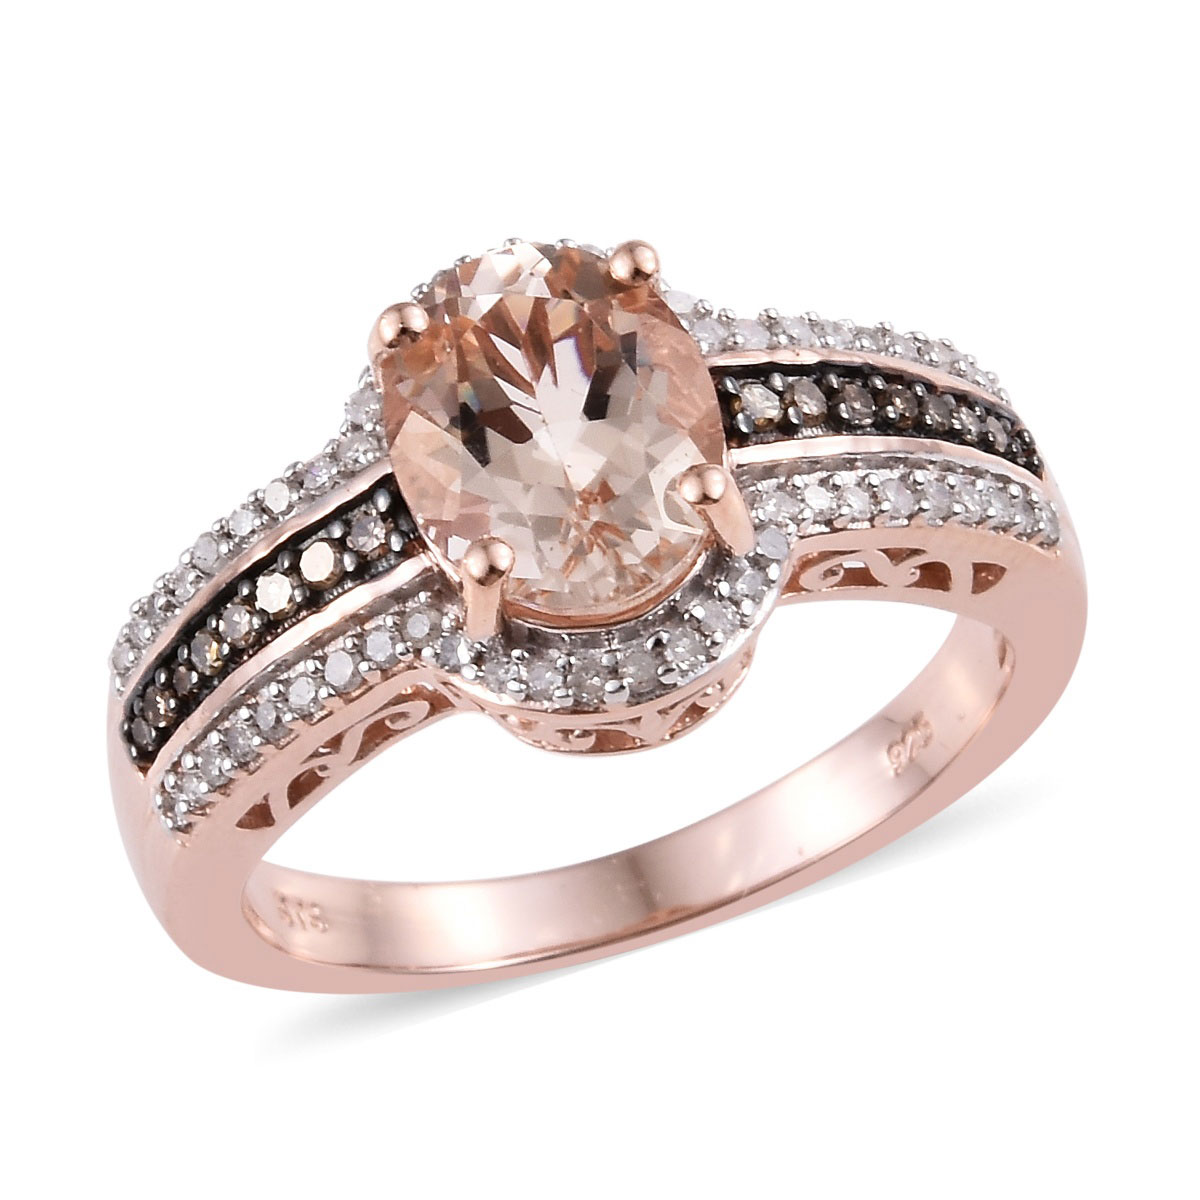 6f78c53150378 Marropino Morganite, Natural Champagne and White Diamond (0.35 ct) Ring in  Rhodium & Vermeil RG Over Sterling Silver (Size 10.0) 2.75 ctw